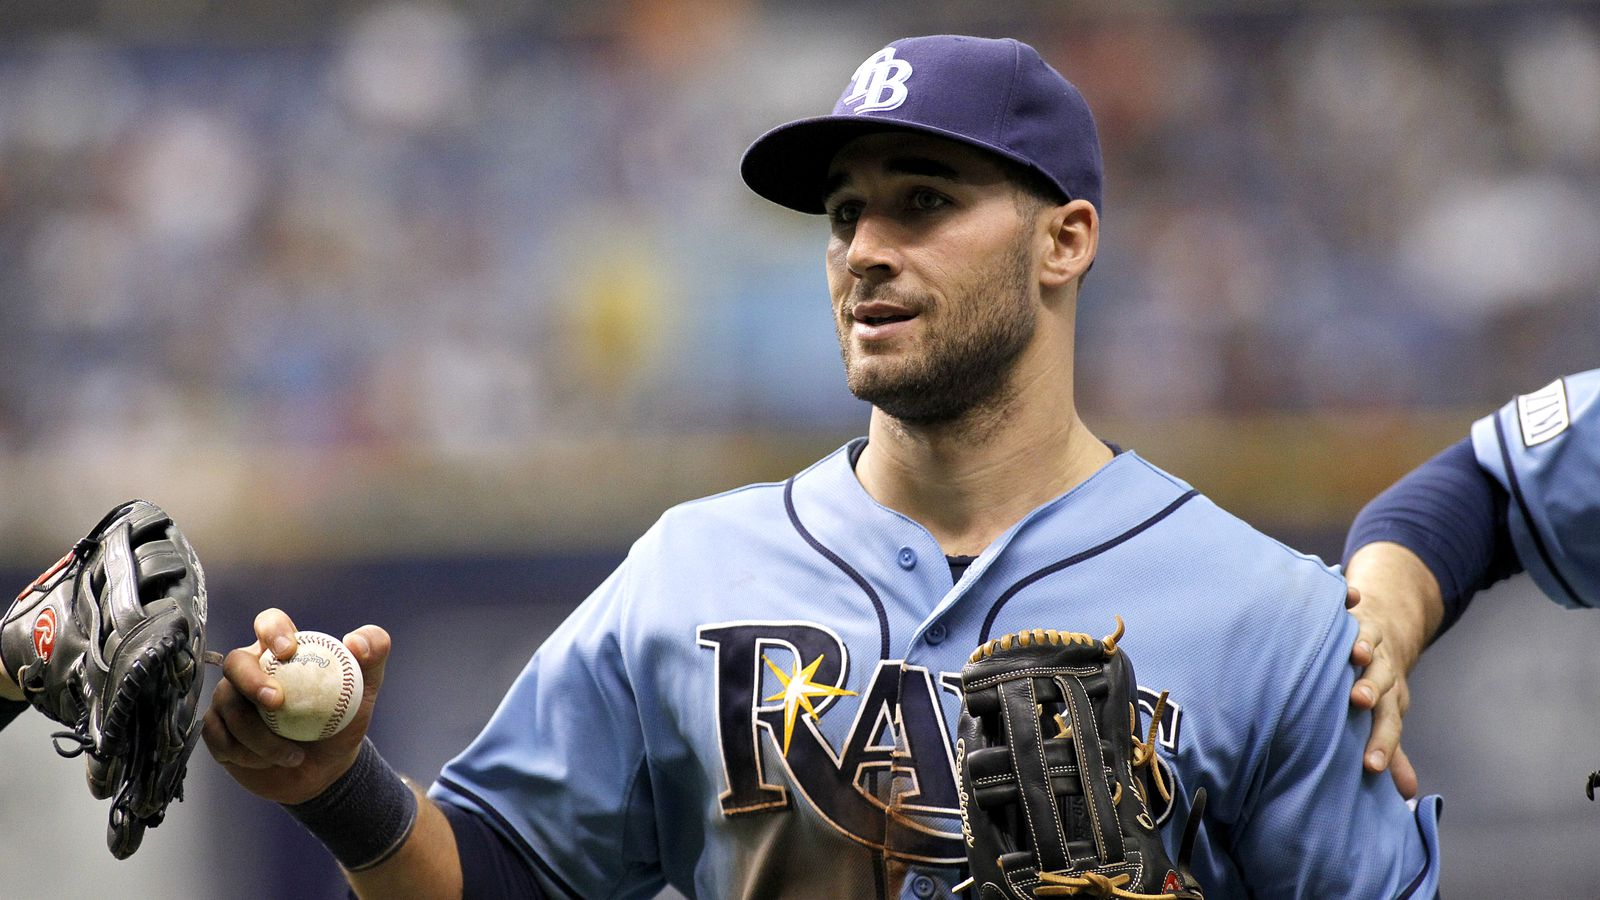 Kevin Kiermaier nominated for Gold Glove - DRaysBay